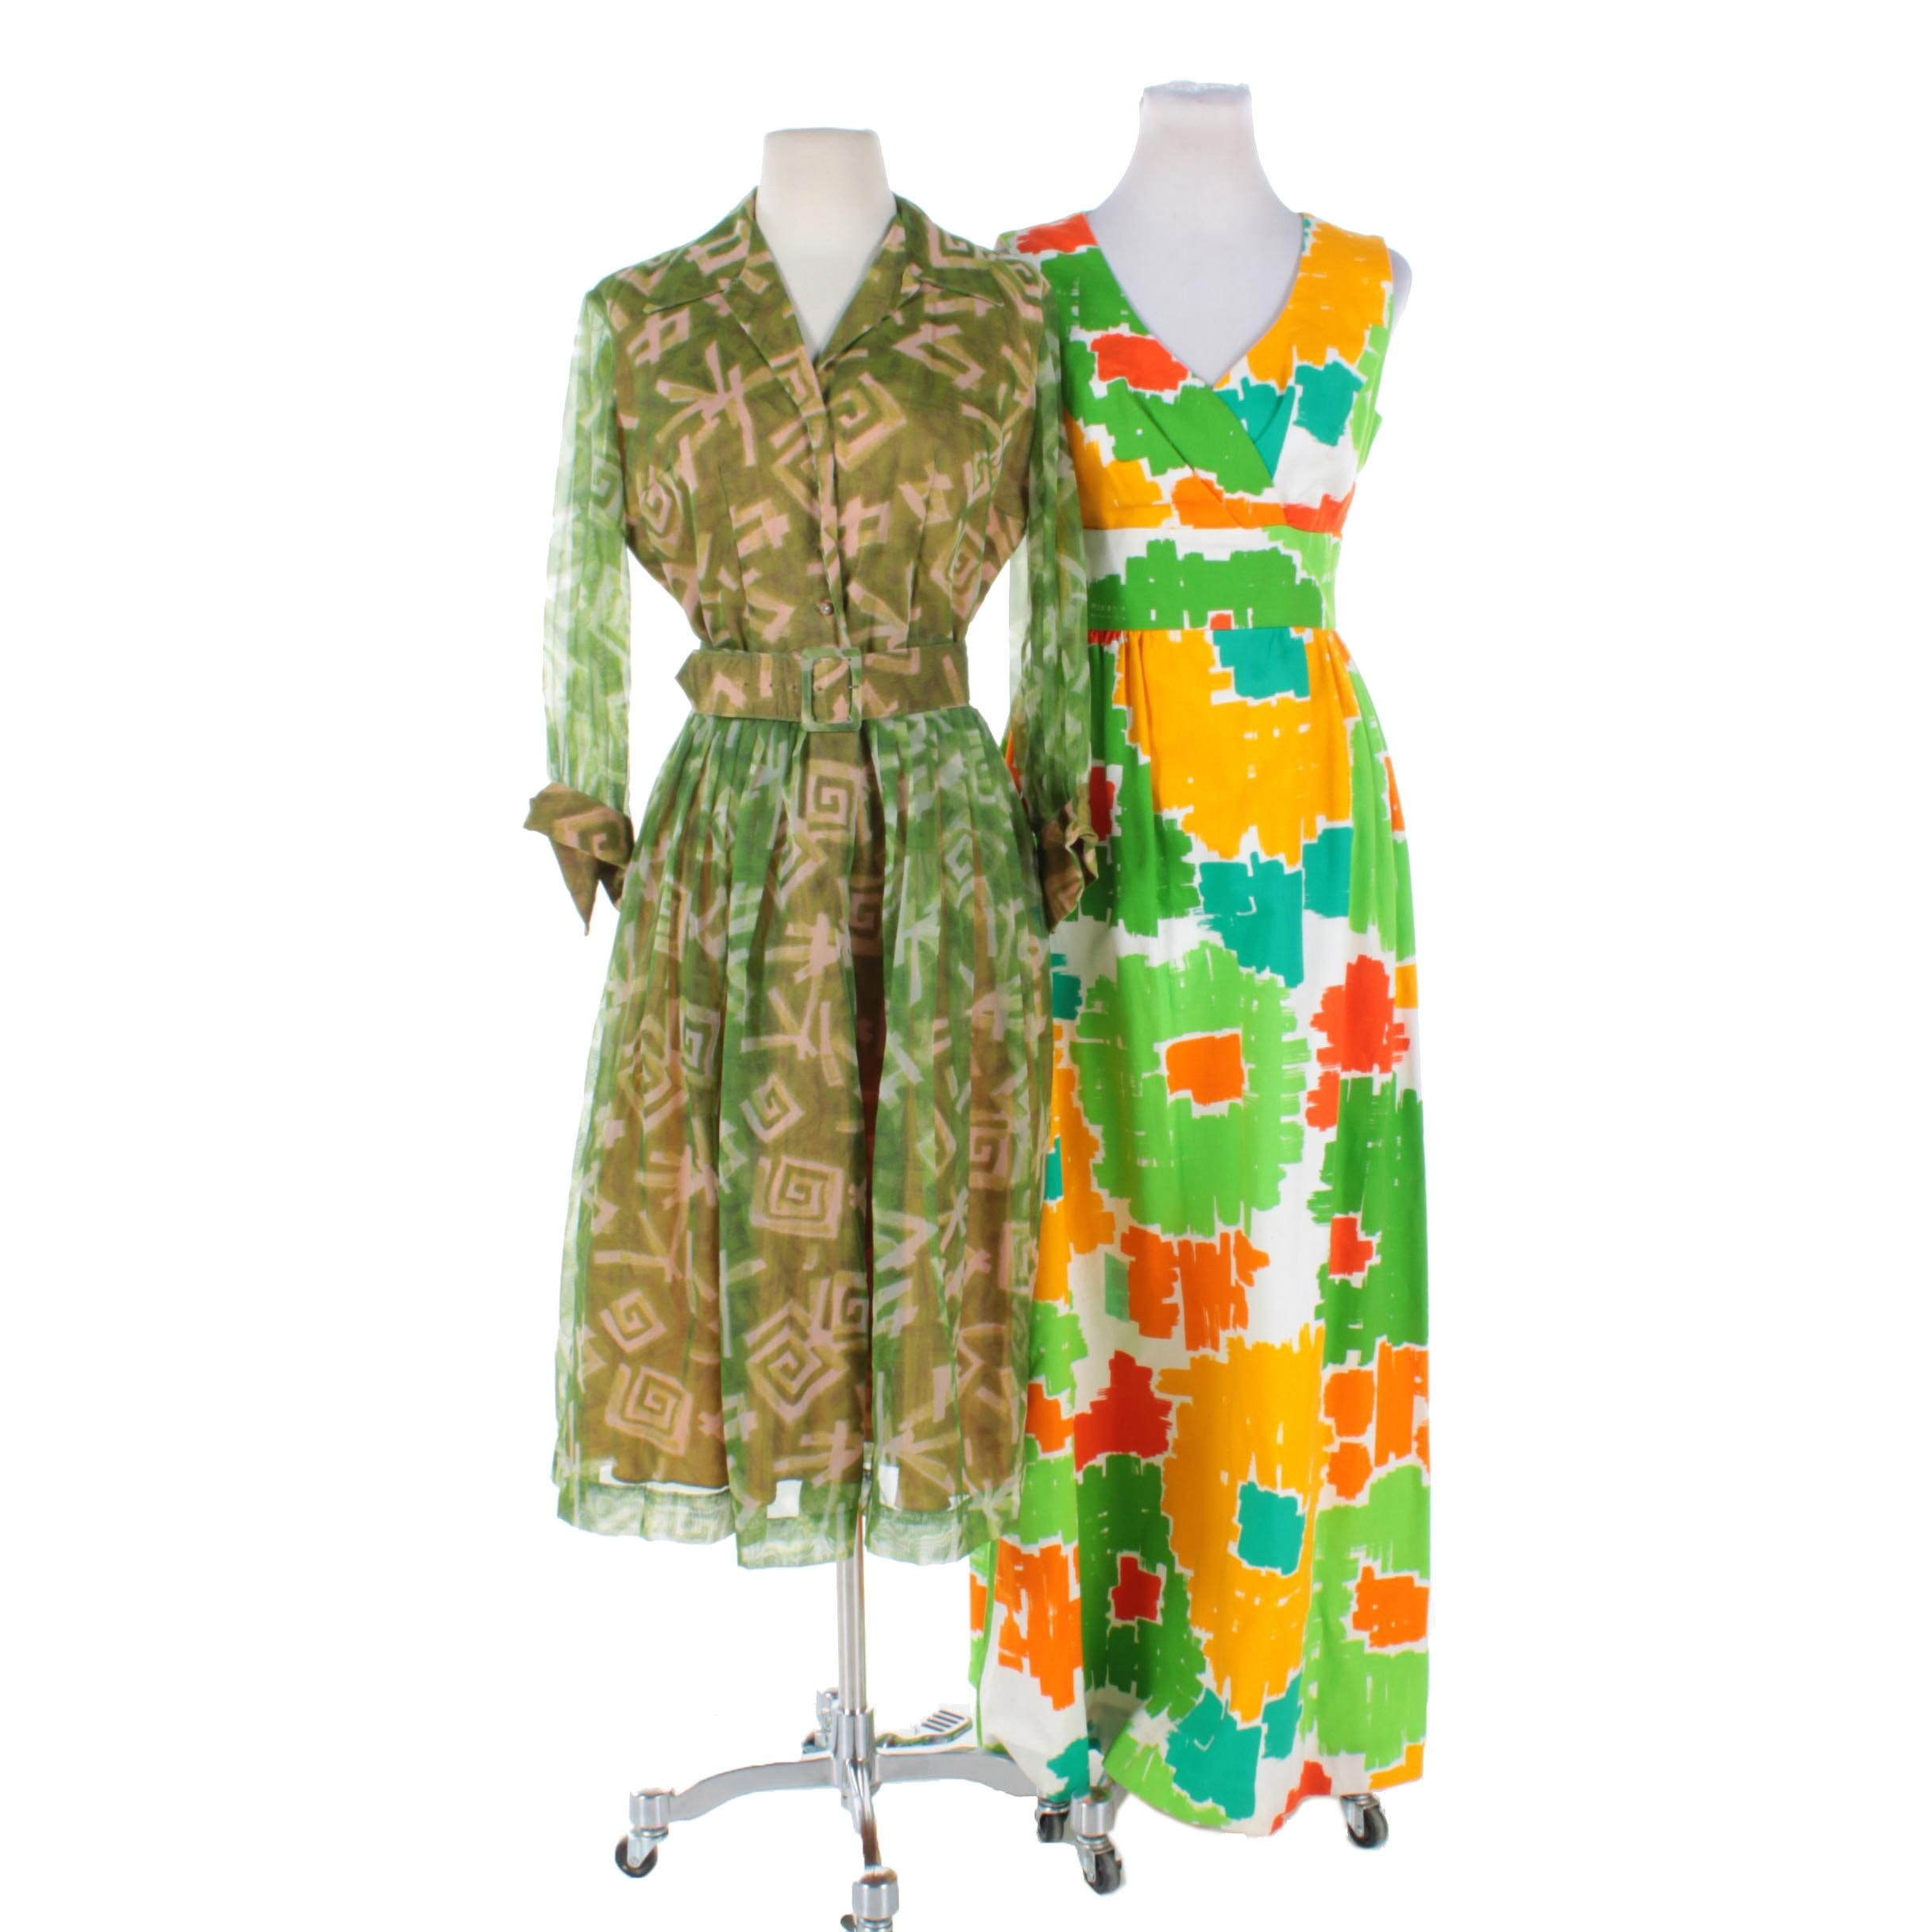 Women's Vintage Dresses Including a Malia Honolulu Floral Maxi Dress